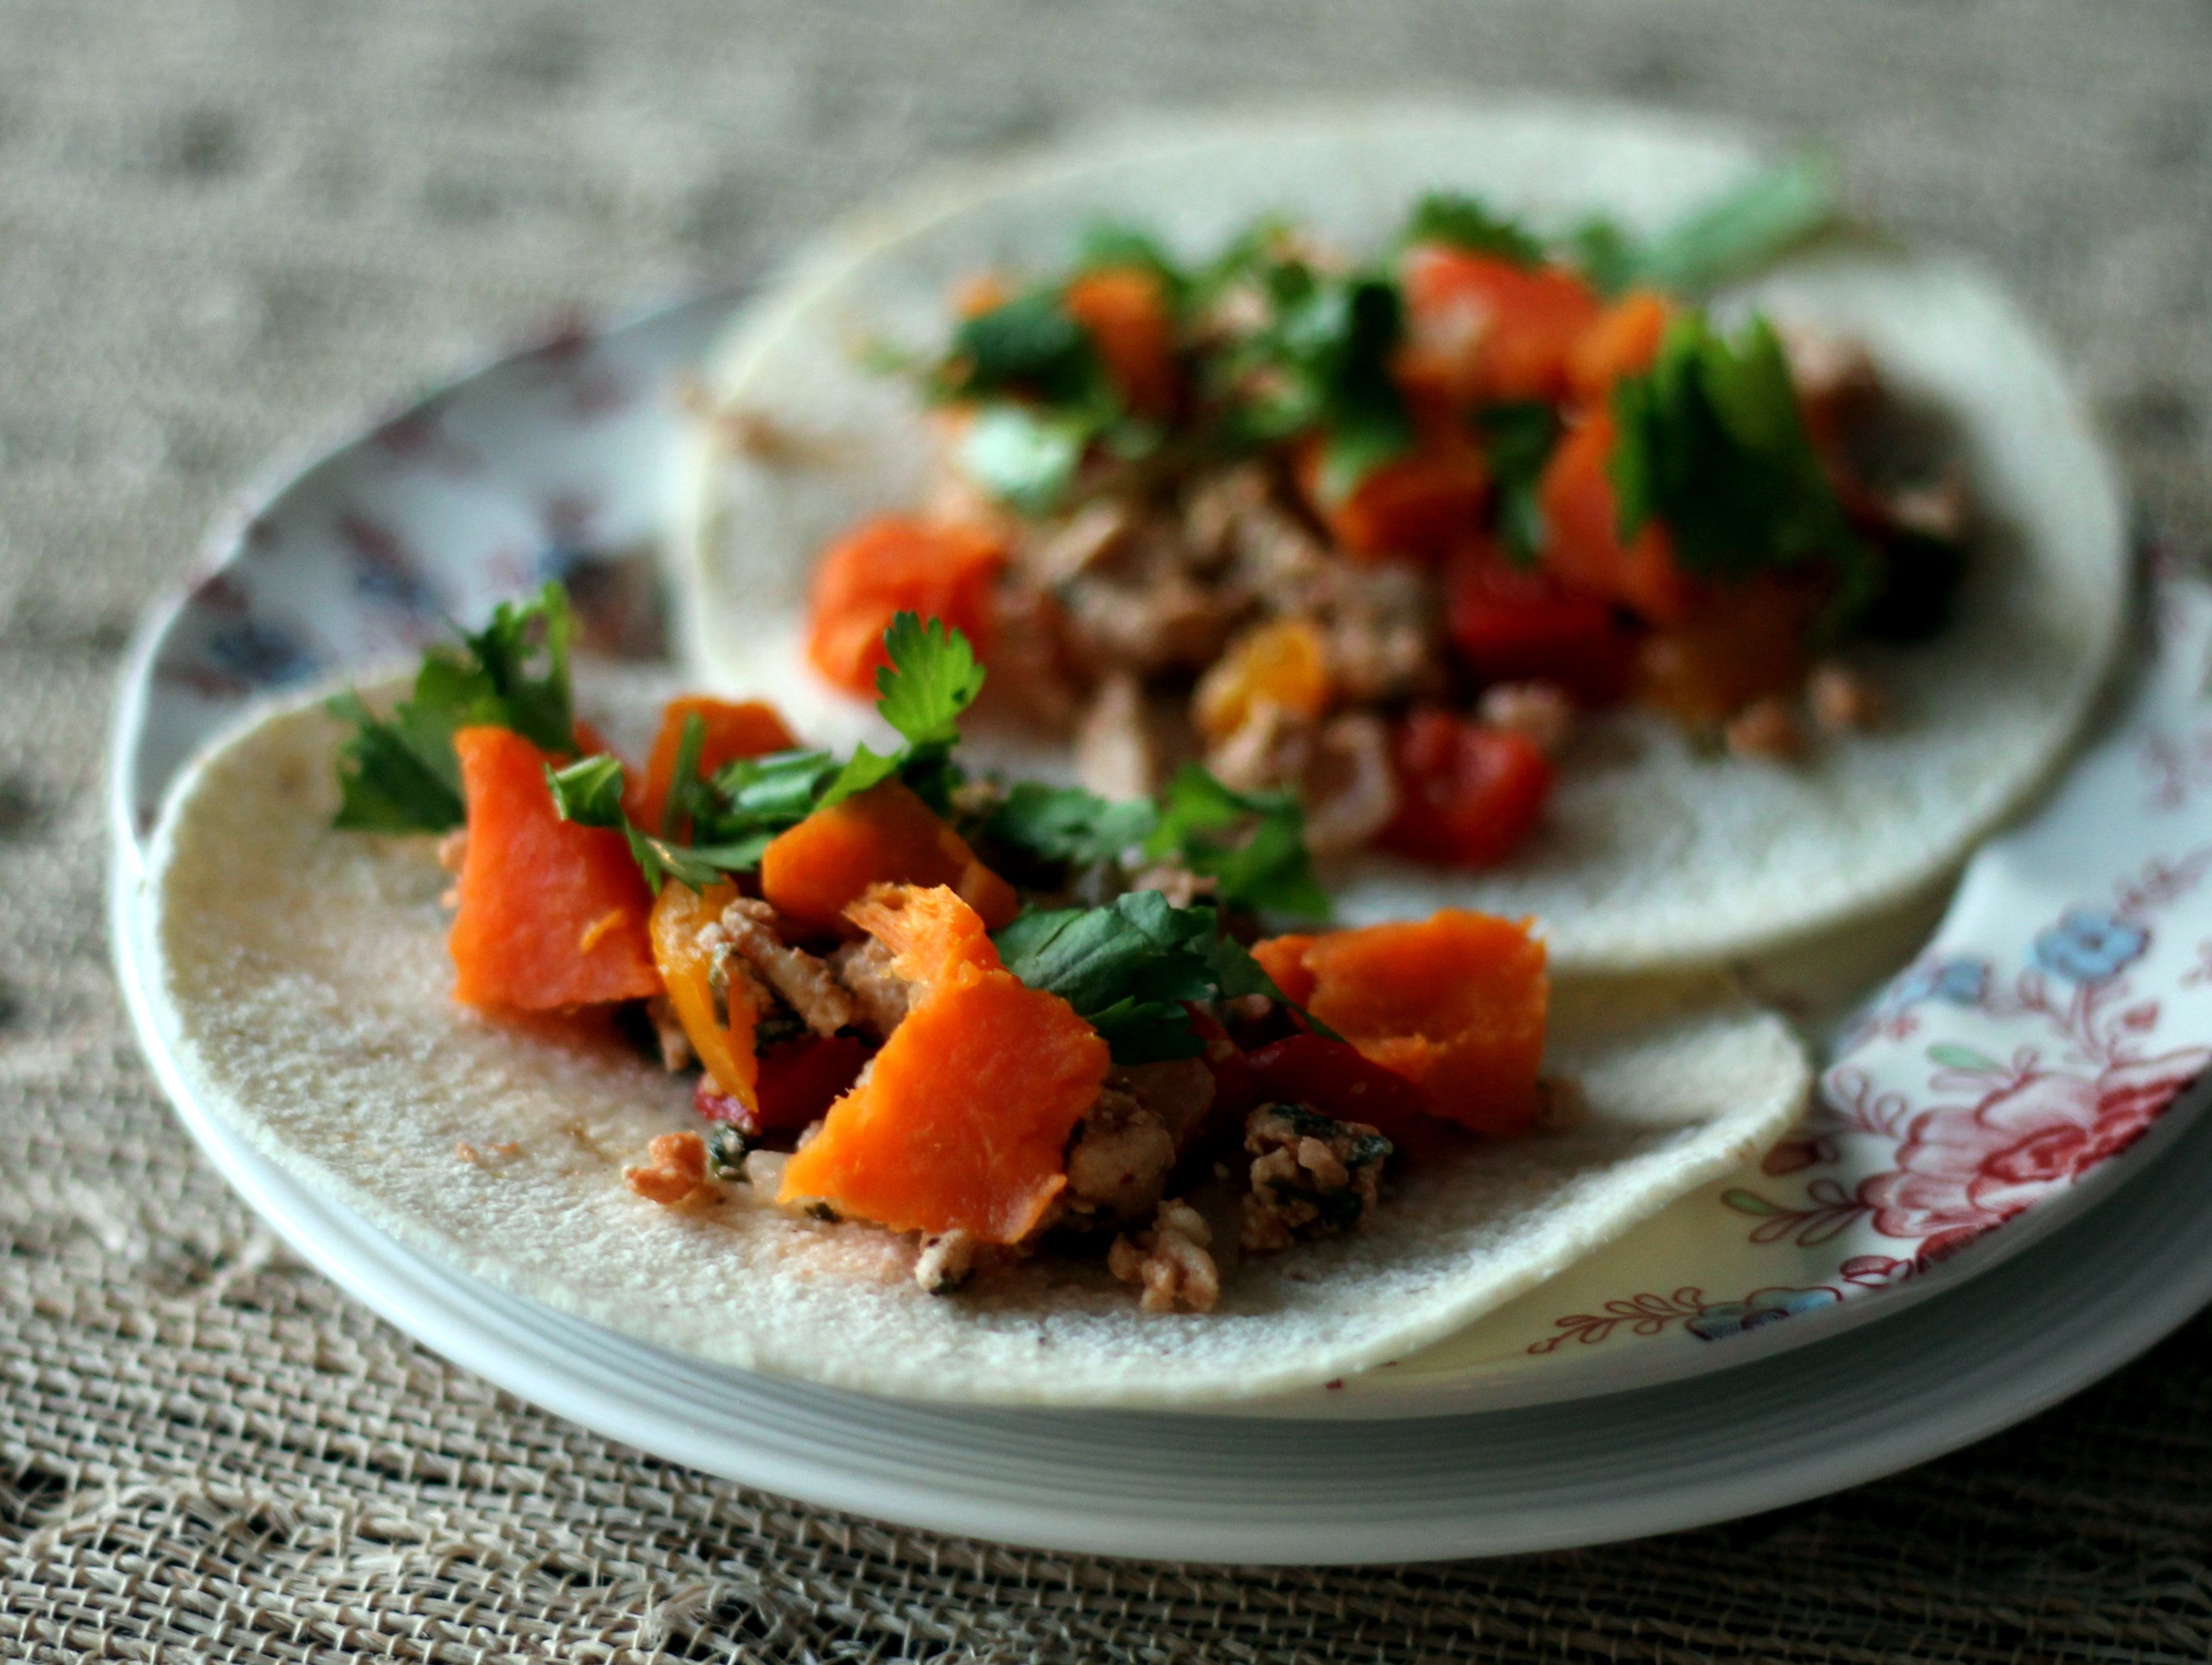 Sweet potato chicken mexican stir fry ambitious kitchen alright forumfinder Image collections